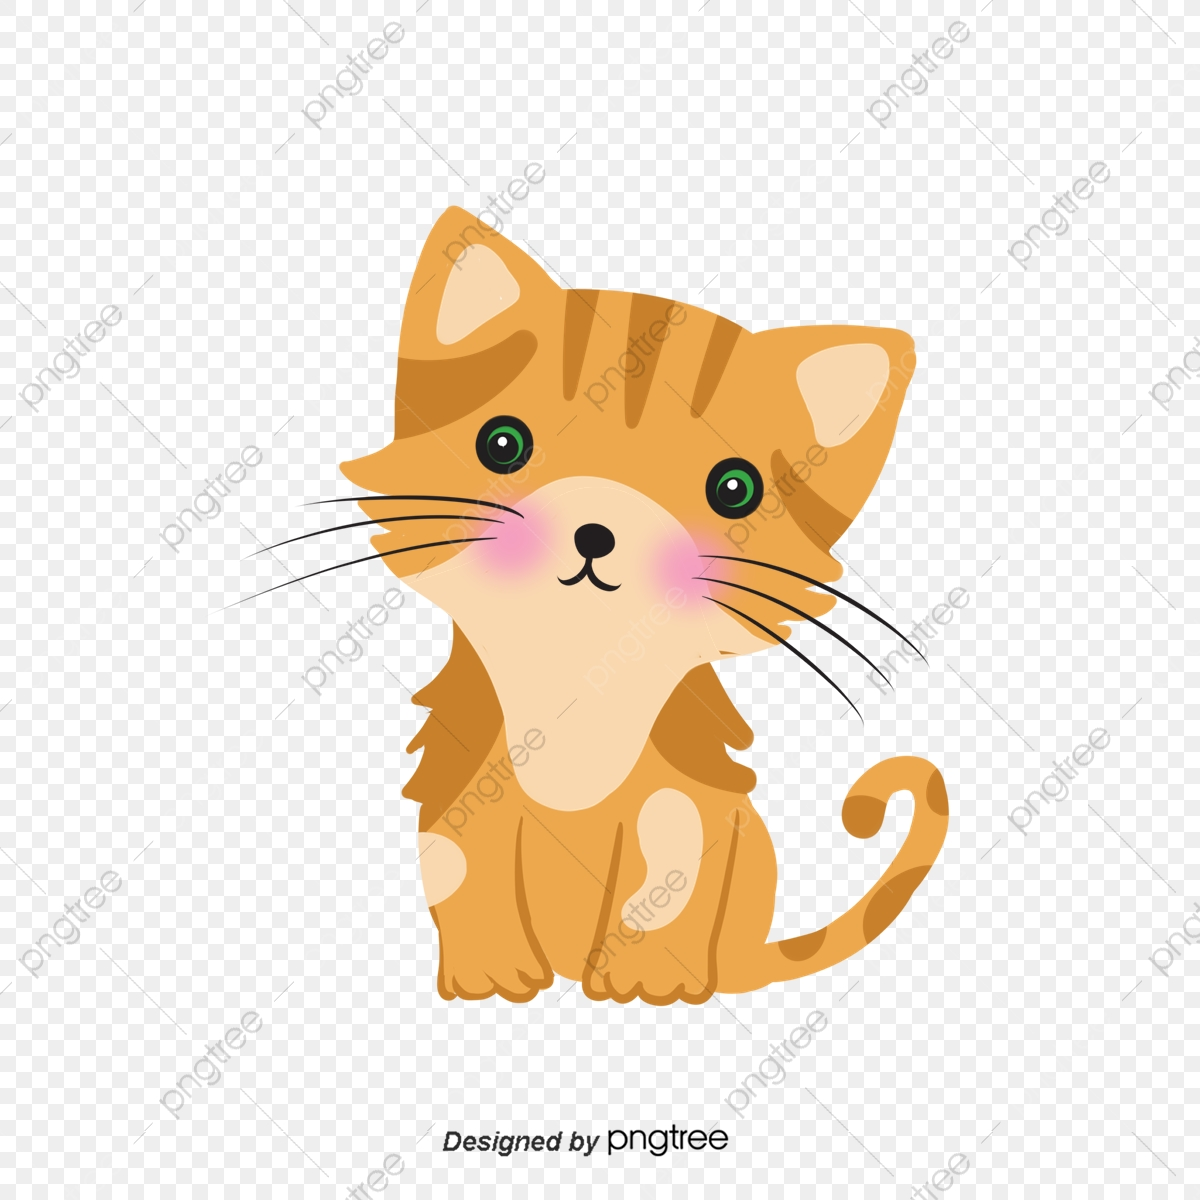 hight resolution of commercial use resource upgrade to premium plan and get license authorization upgradenow cat clipart